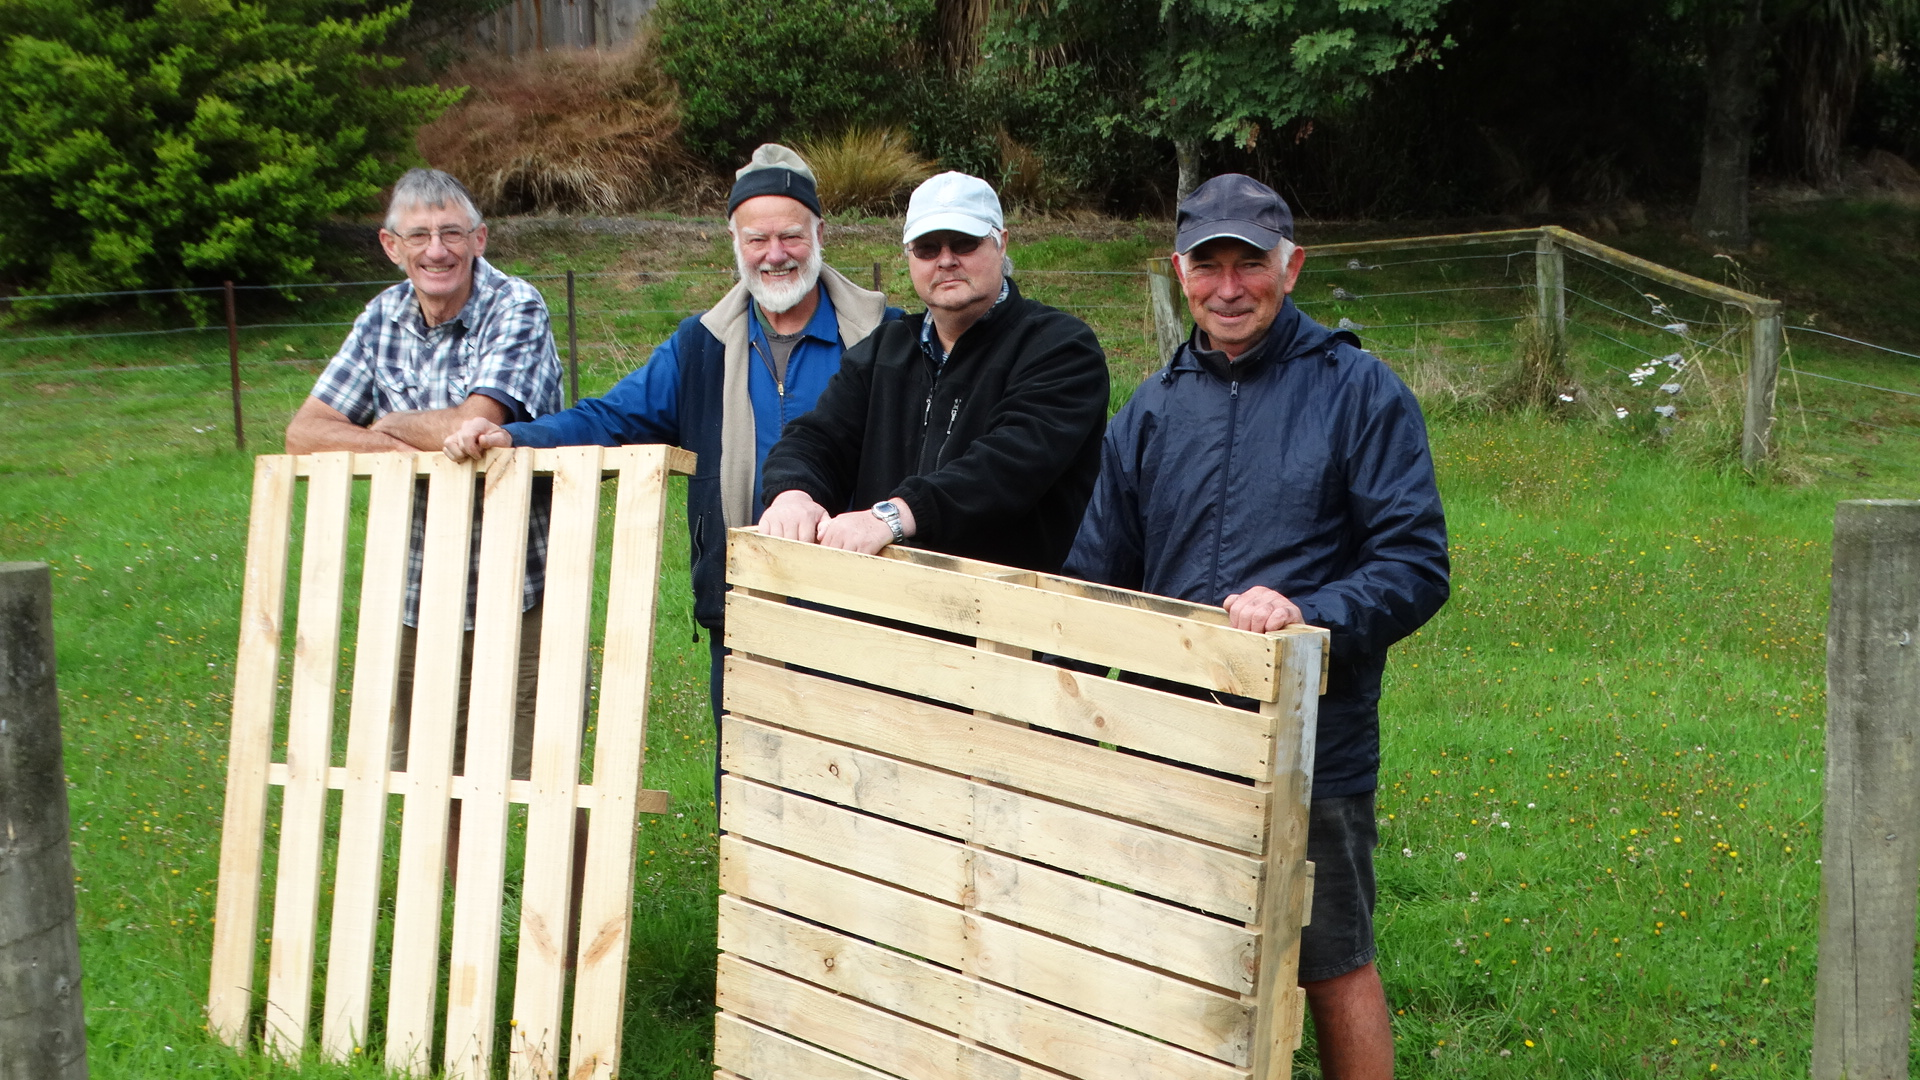 Green Island Shed founder members (from left) Brian Kane, David Mackle, Brent Aplin and Ian Hand,...